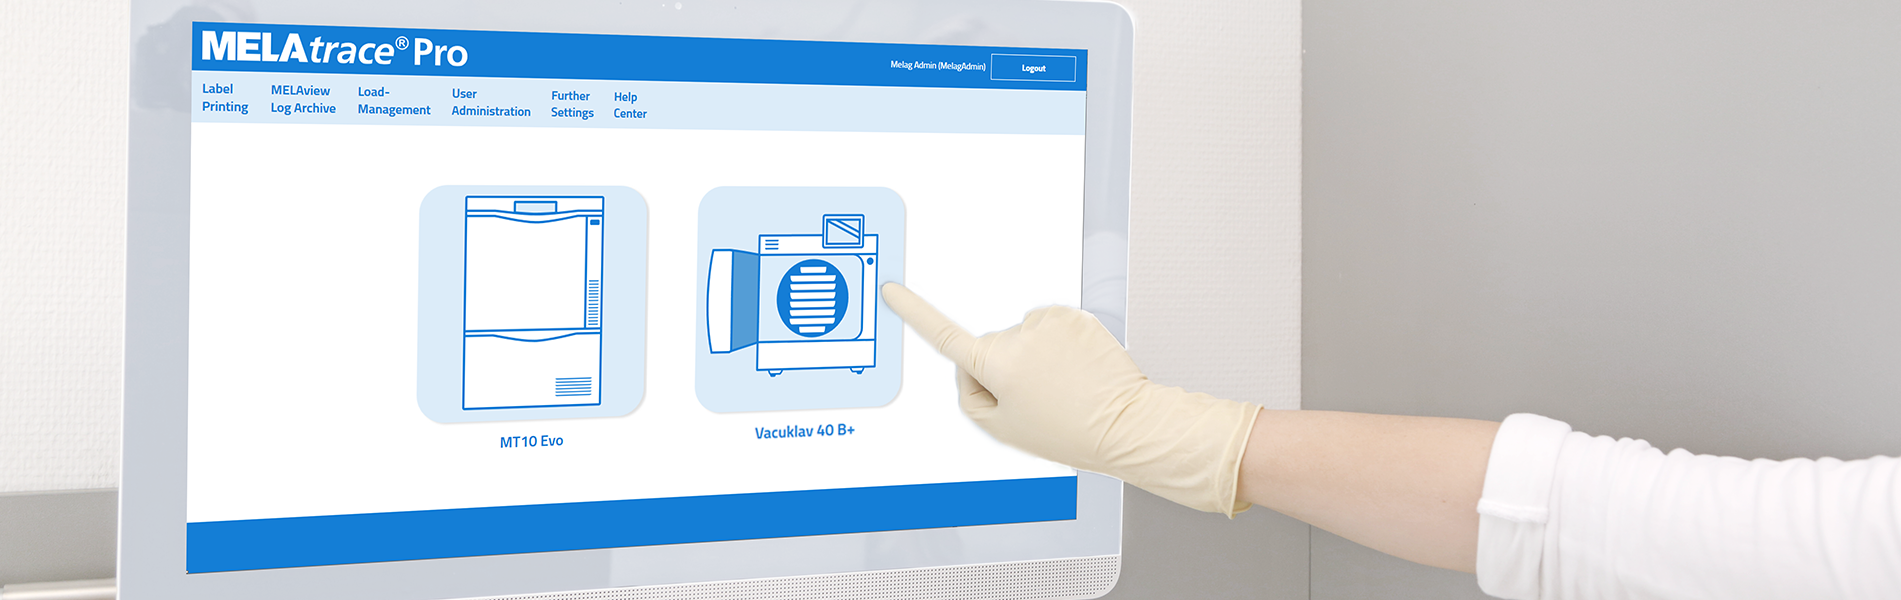 MELAtrace documentation software on touch screen